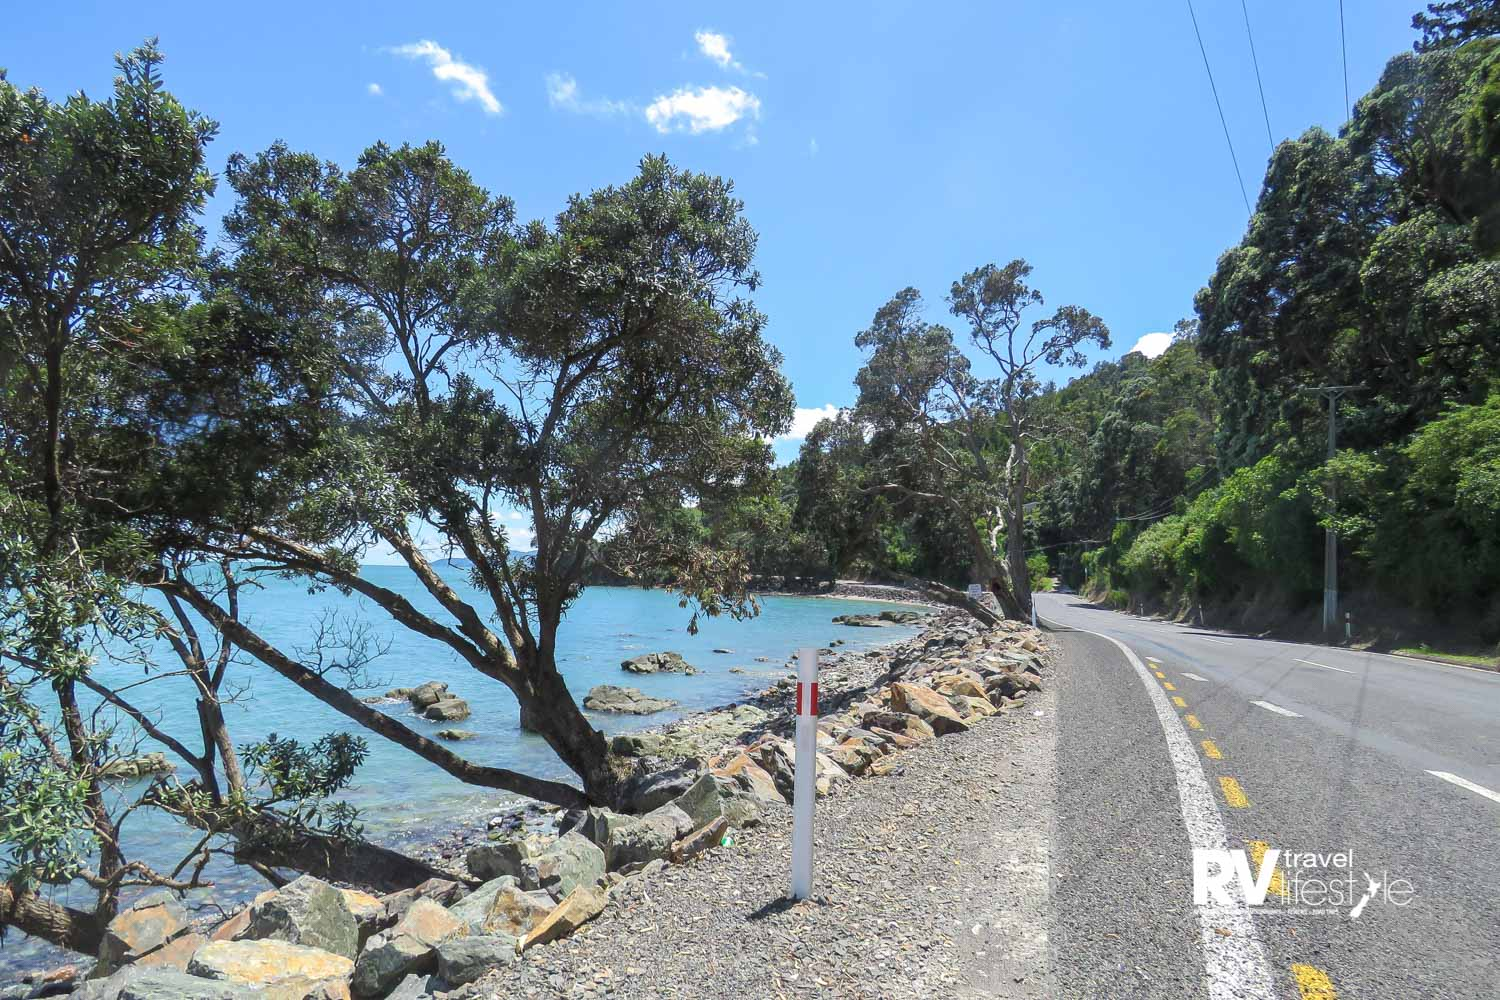 The road up the west coast of the Coromandel Peninsula is right on the seashore